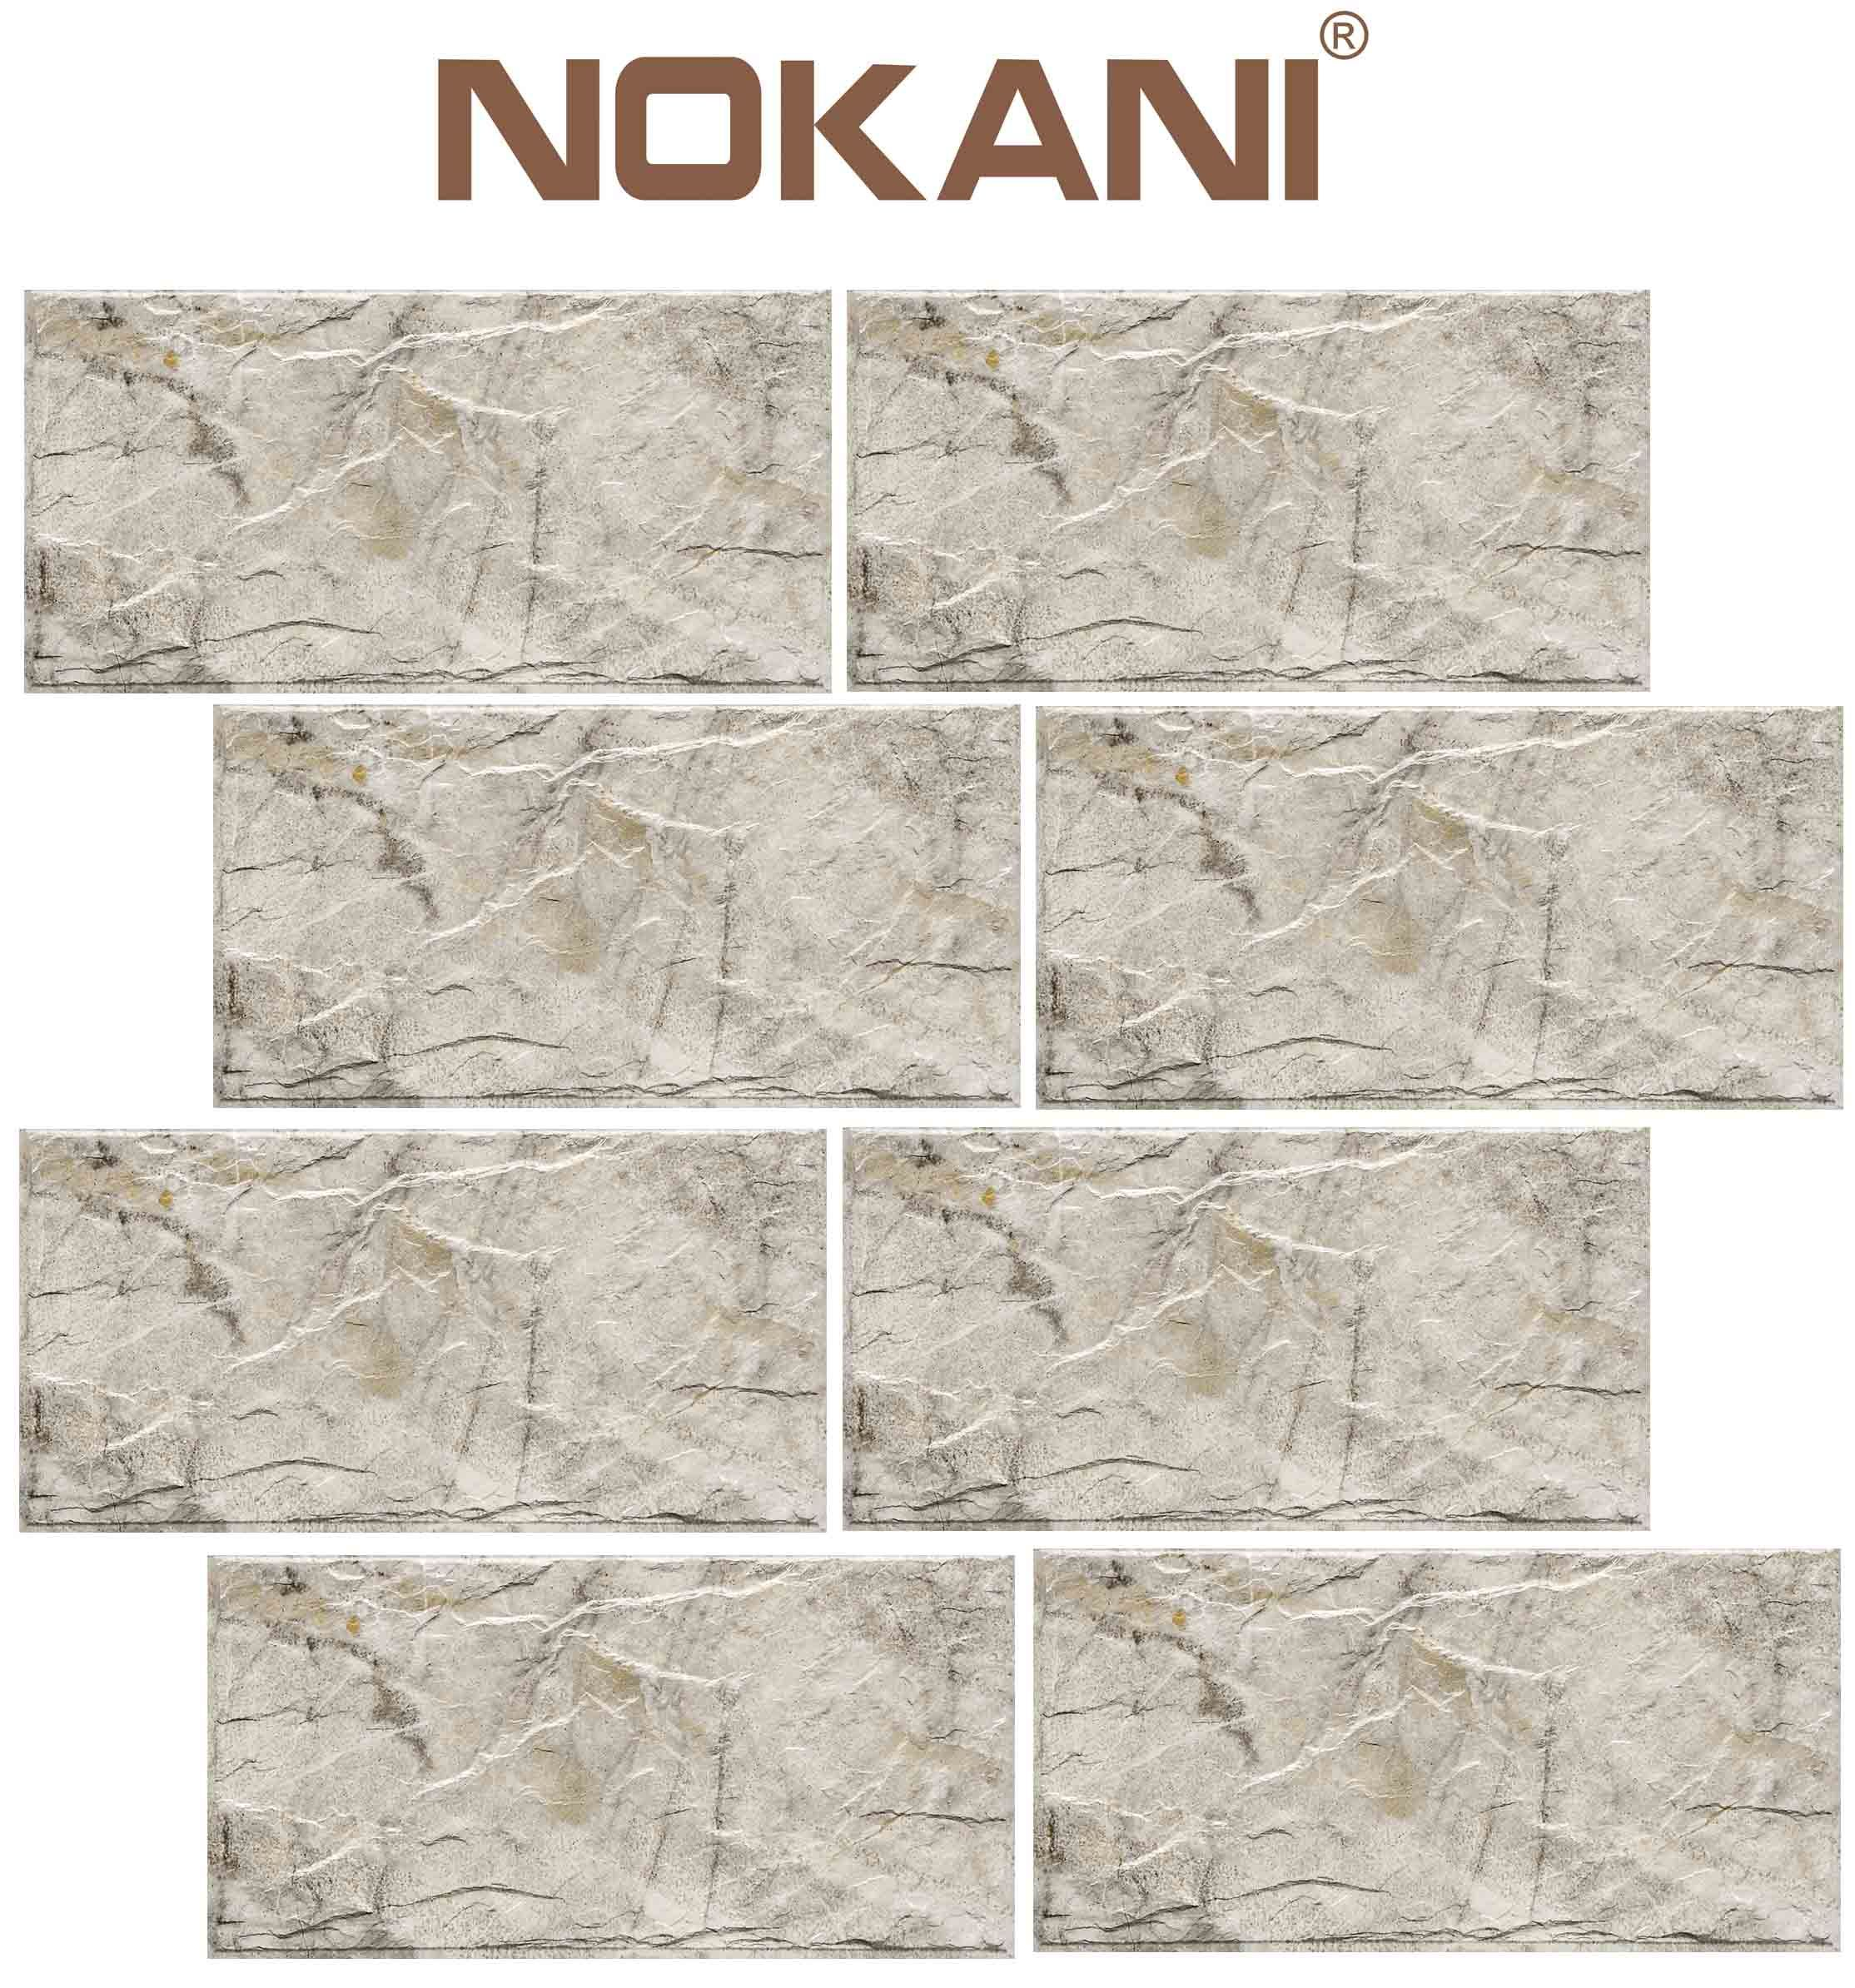 Exterior ceramic wall tile images tile flooring design ideas china full body ceramic wall tile exterior wall cladding for wall china full body ceramic wall doublecrazyfo Image collections